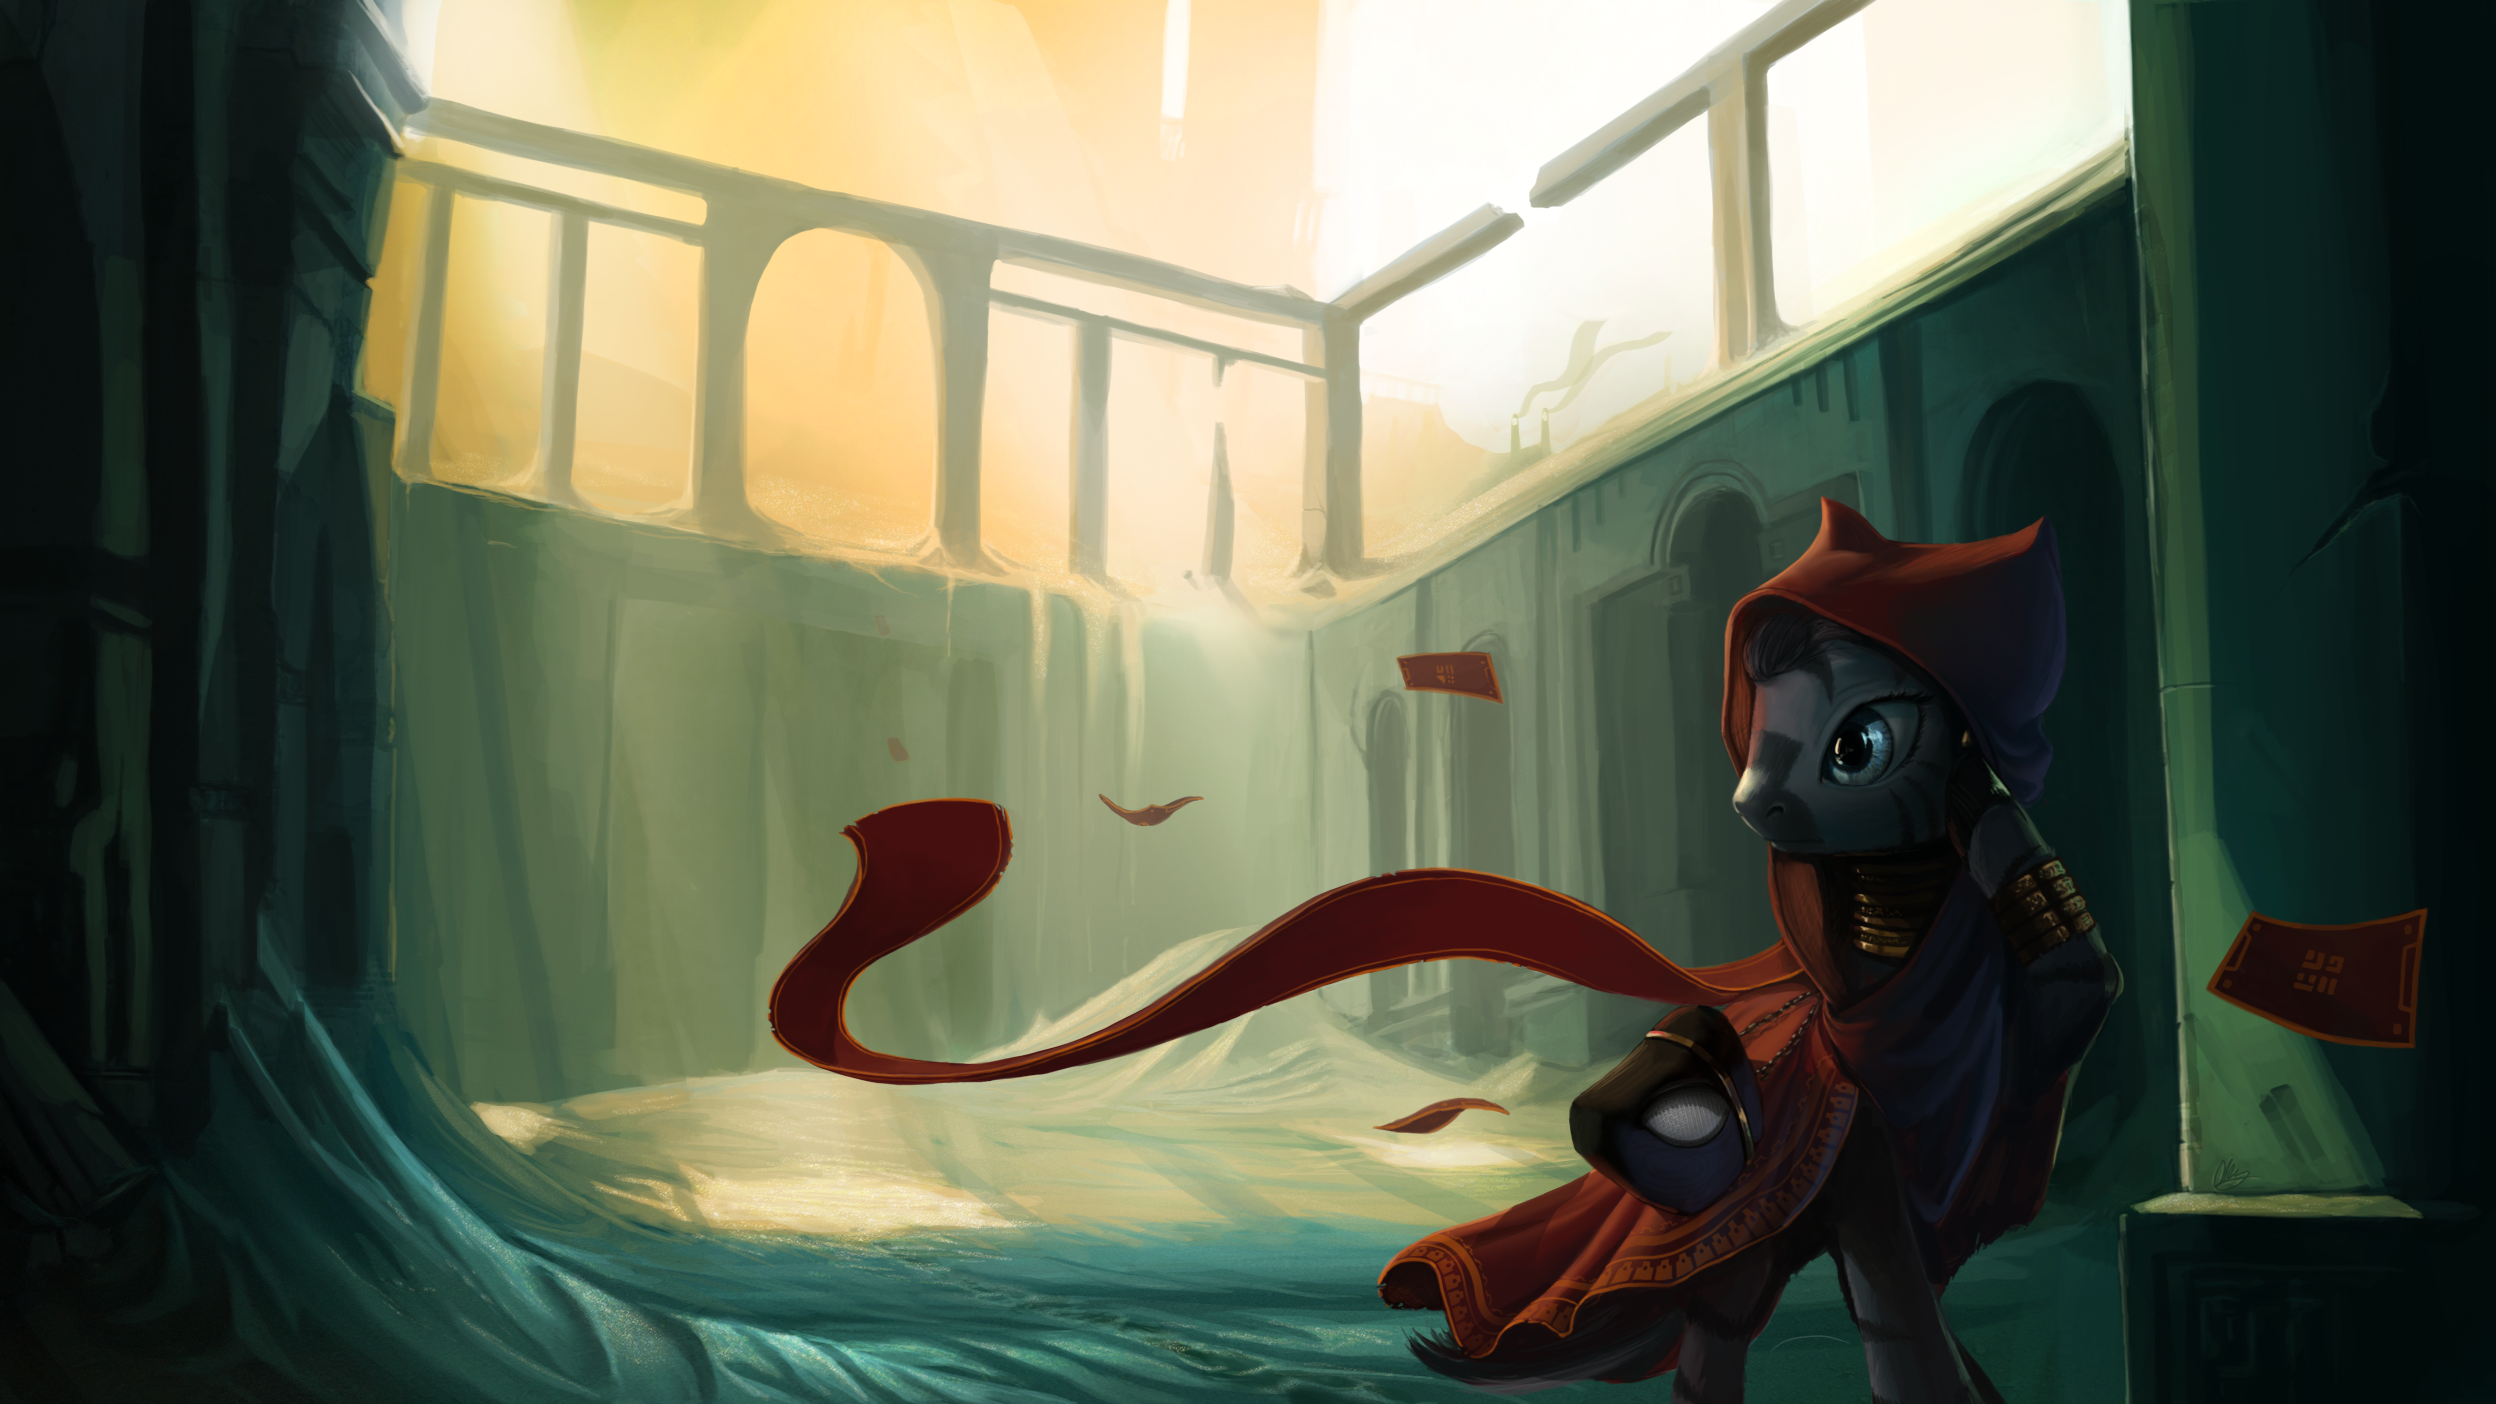 the_descent_by_i_am_knot-d78nkkc.png